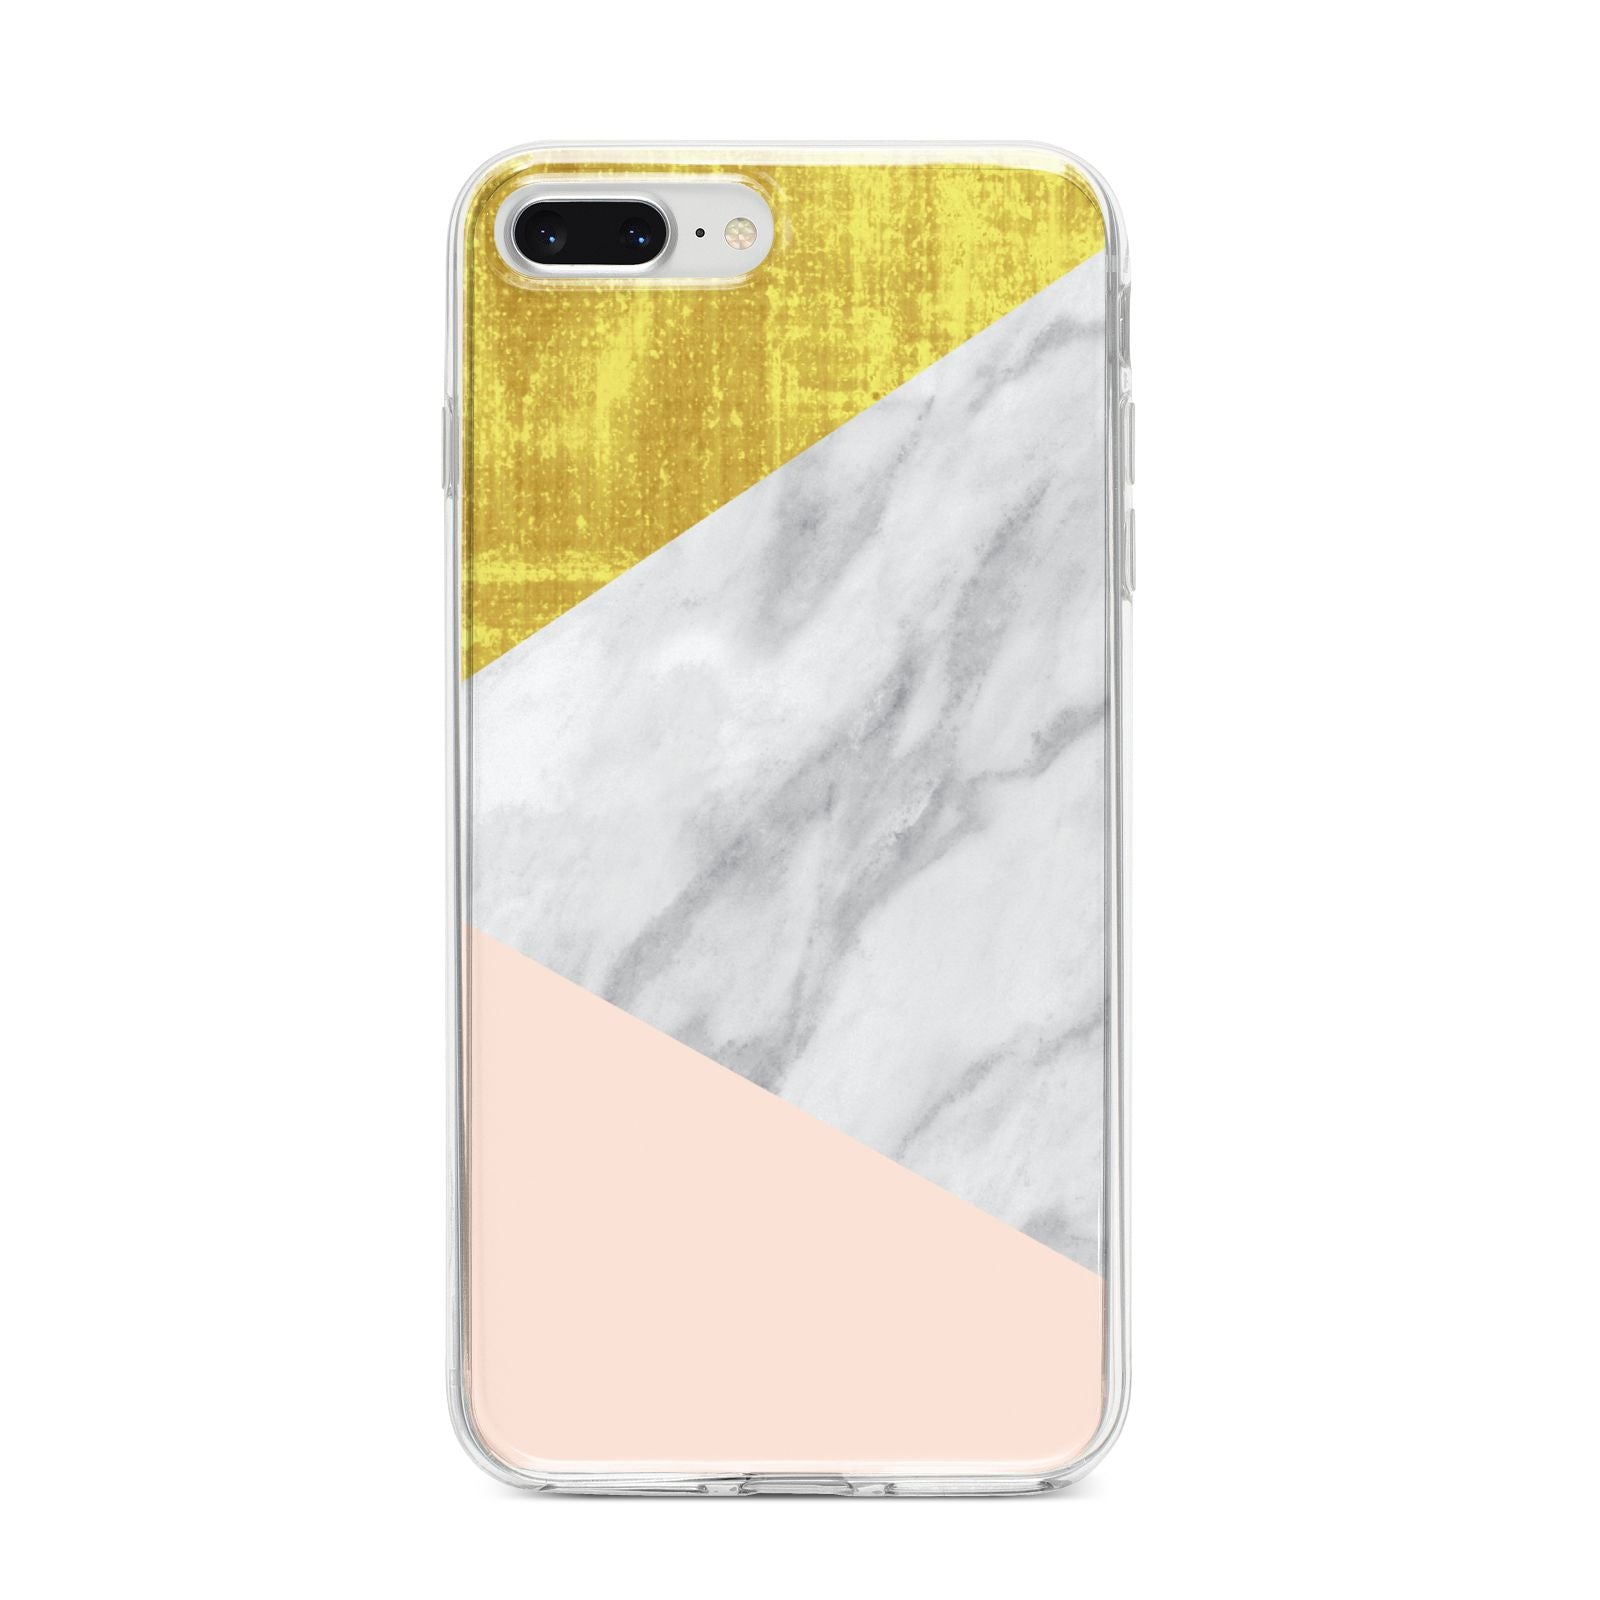 Marble White Gold Foil Peach iPhone 8 Plus Bumper Case on Silver iPhone